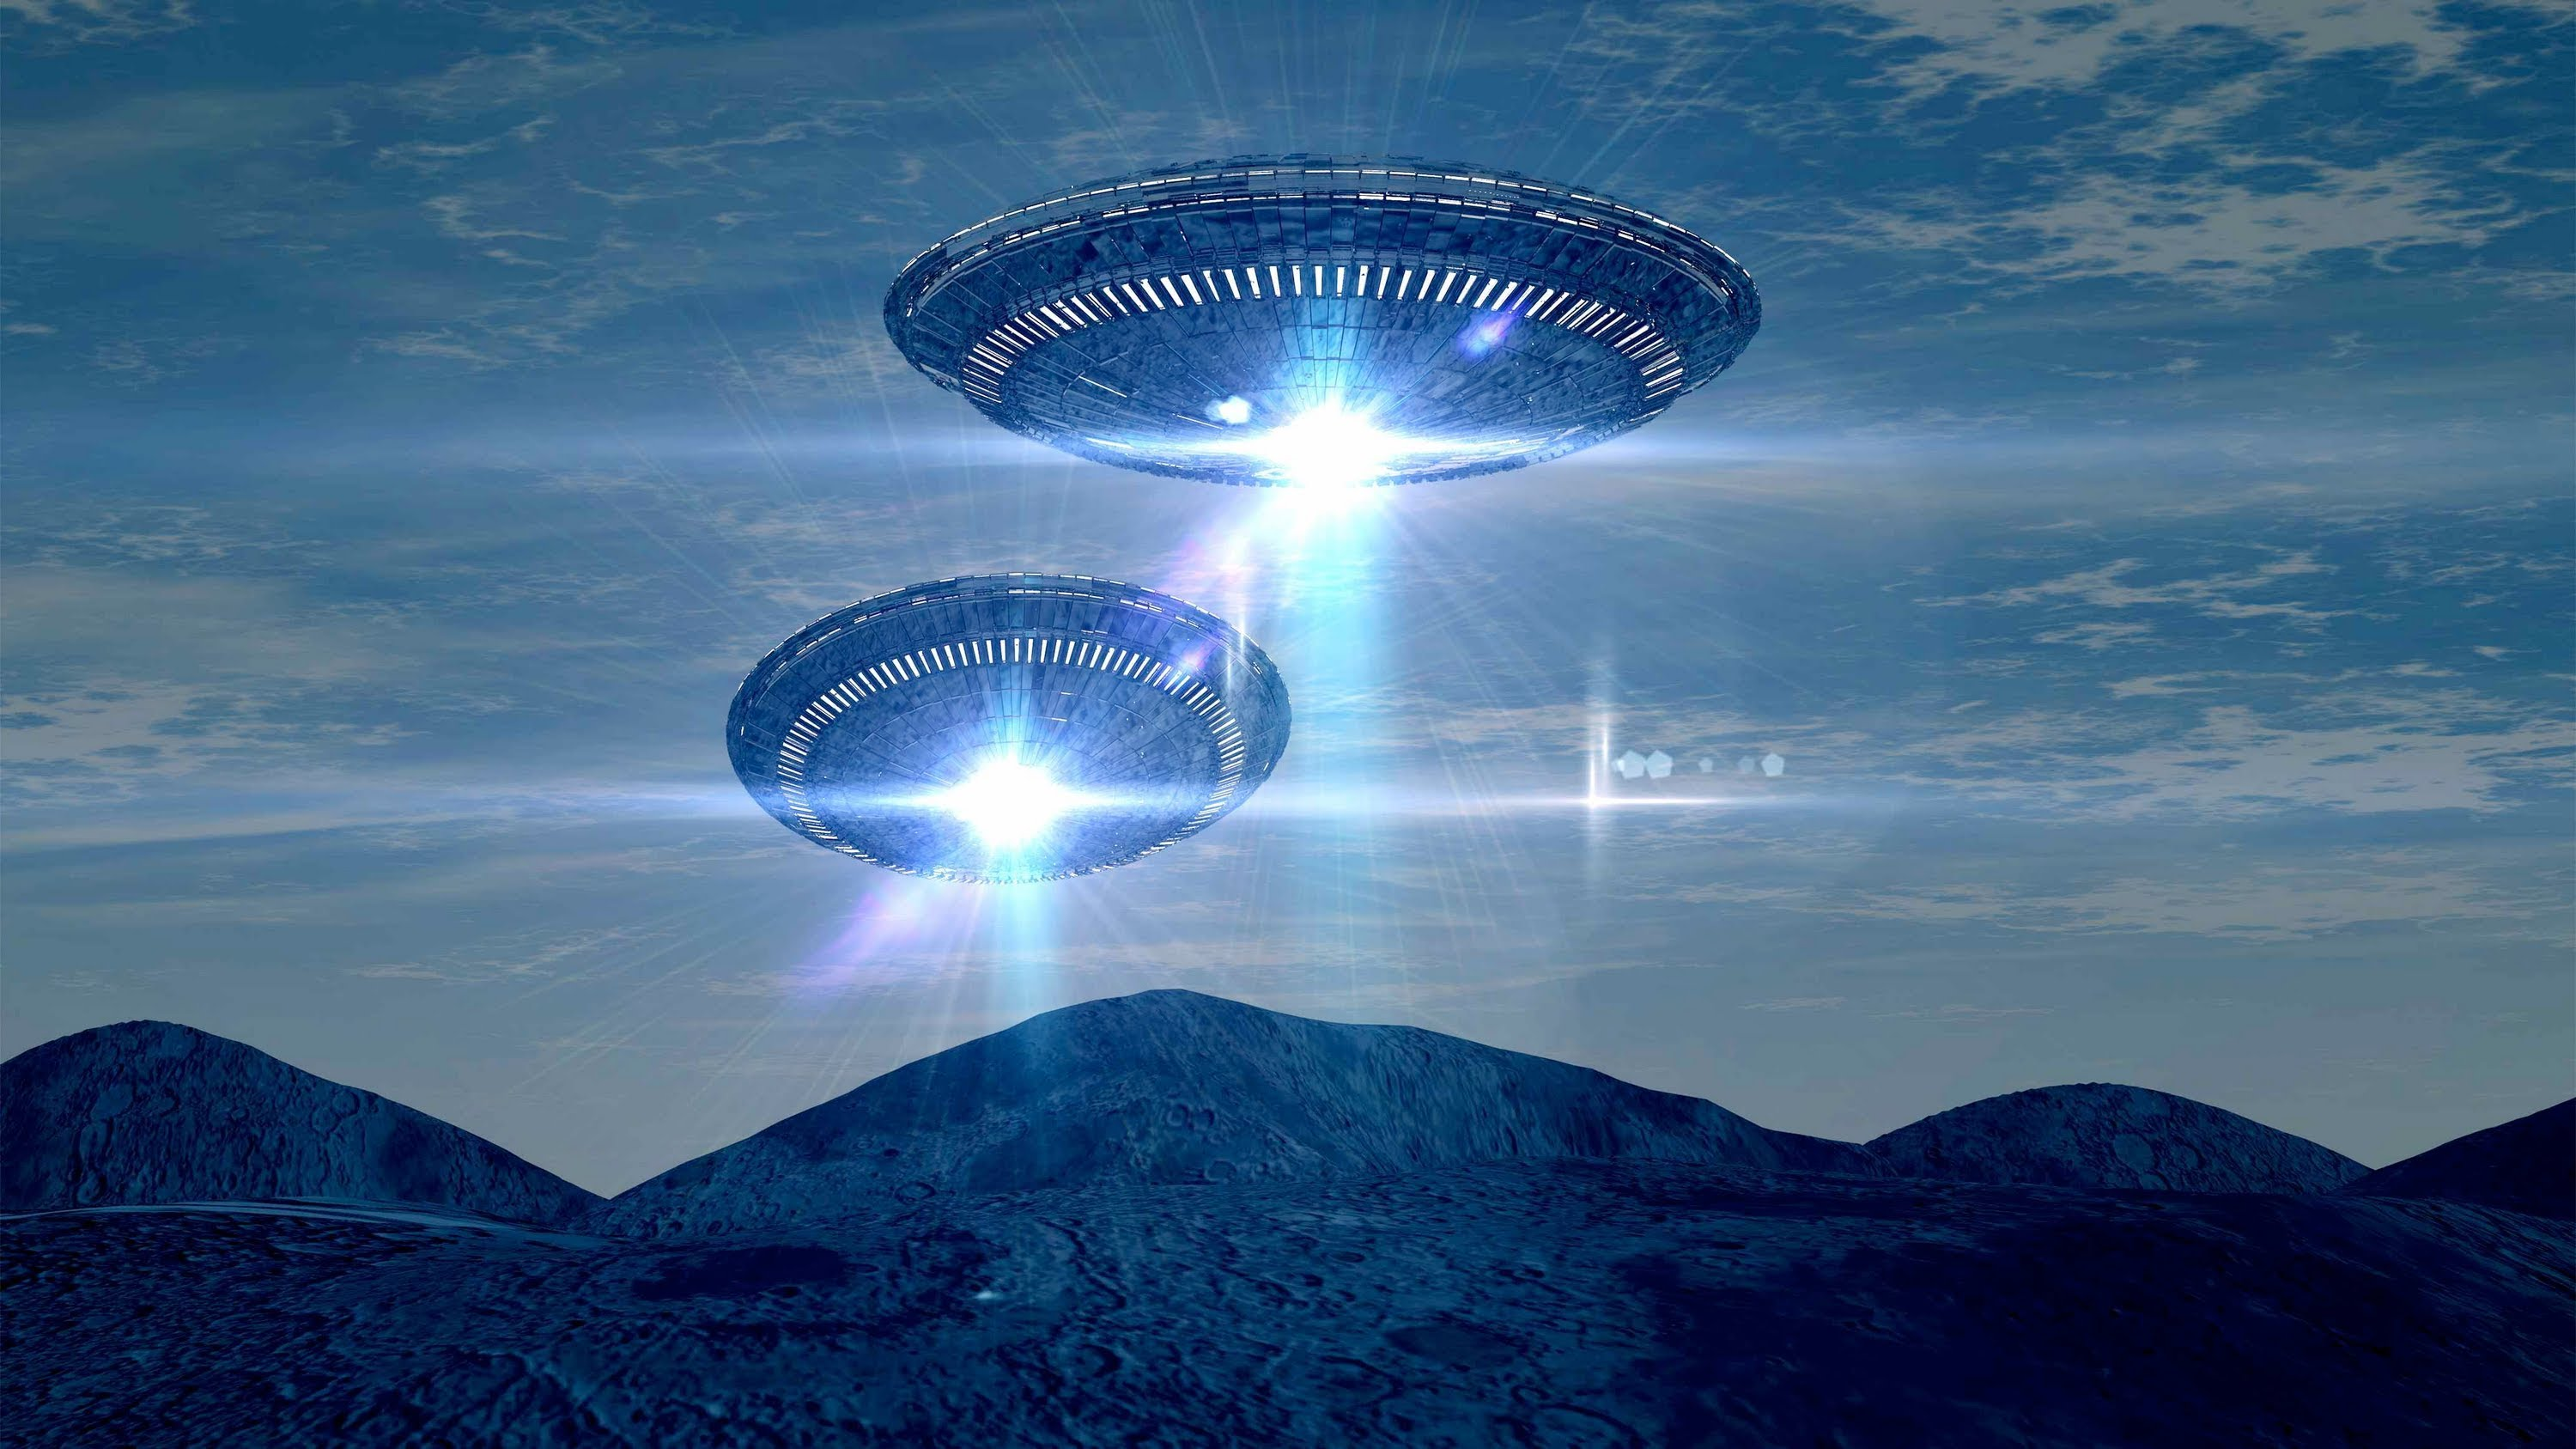 NASA Scientist Claims Alien UFOs Are Gathering On Saturns Rings maxresdefault 37 2